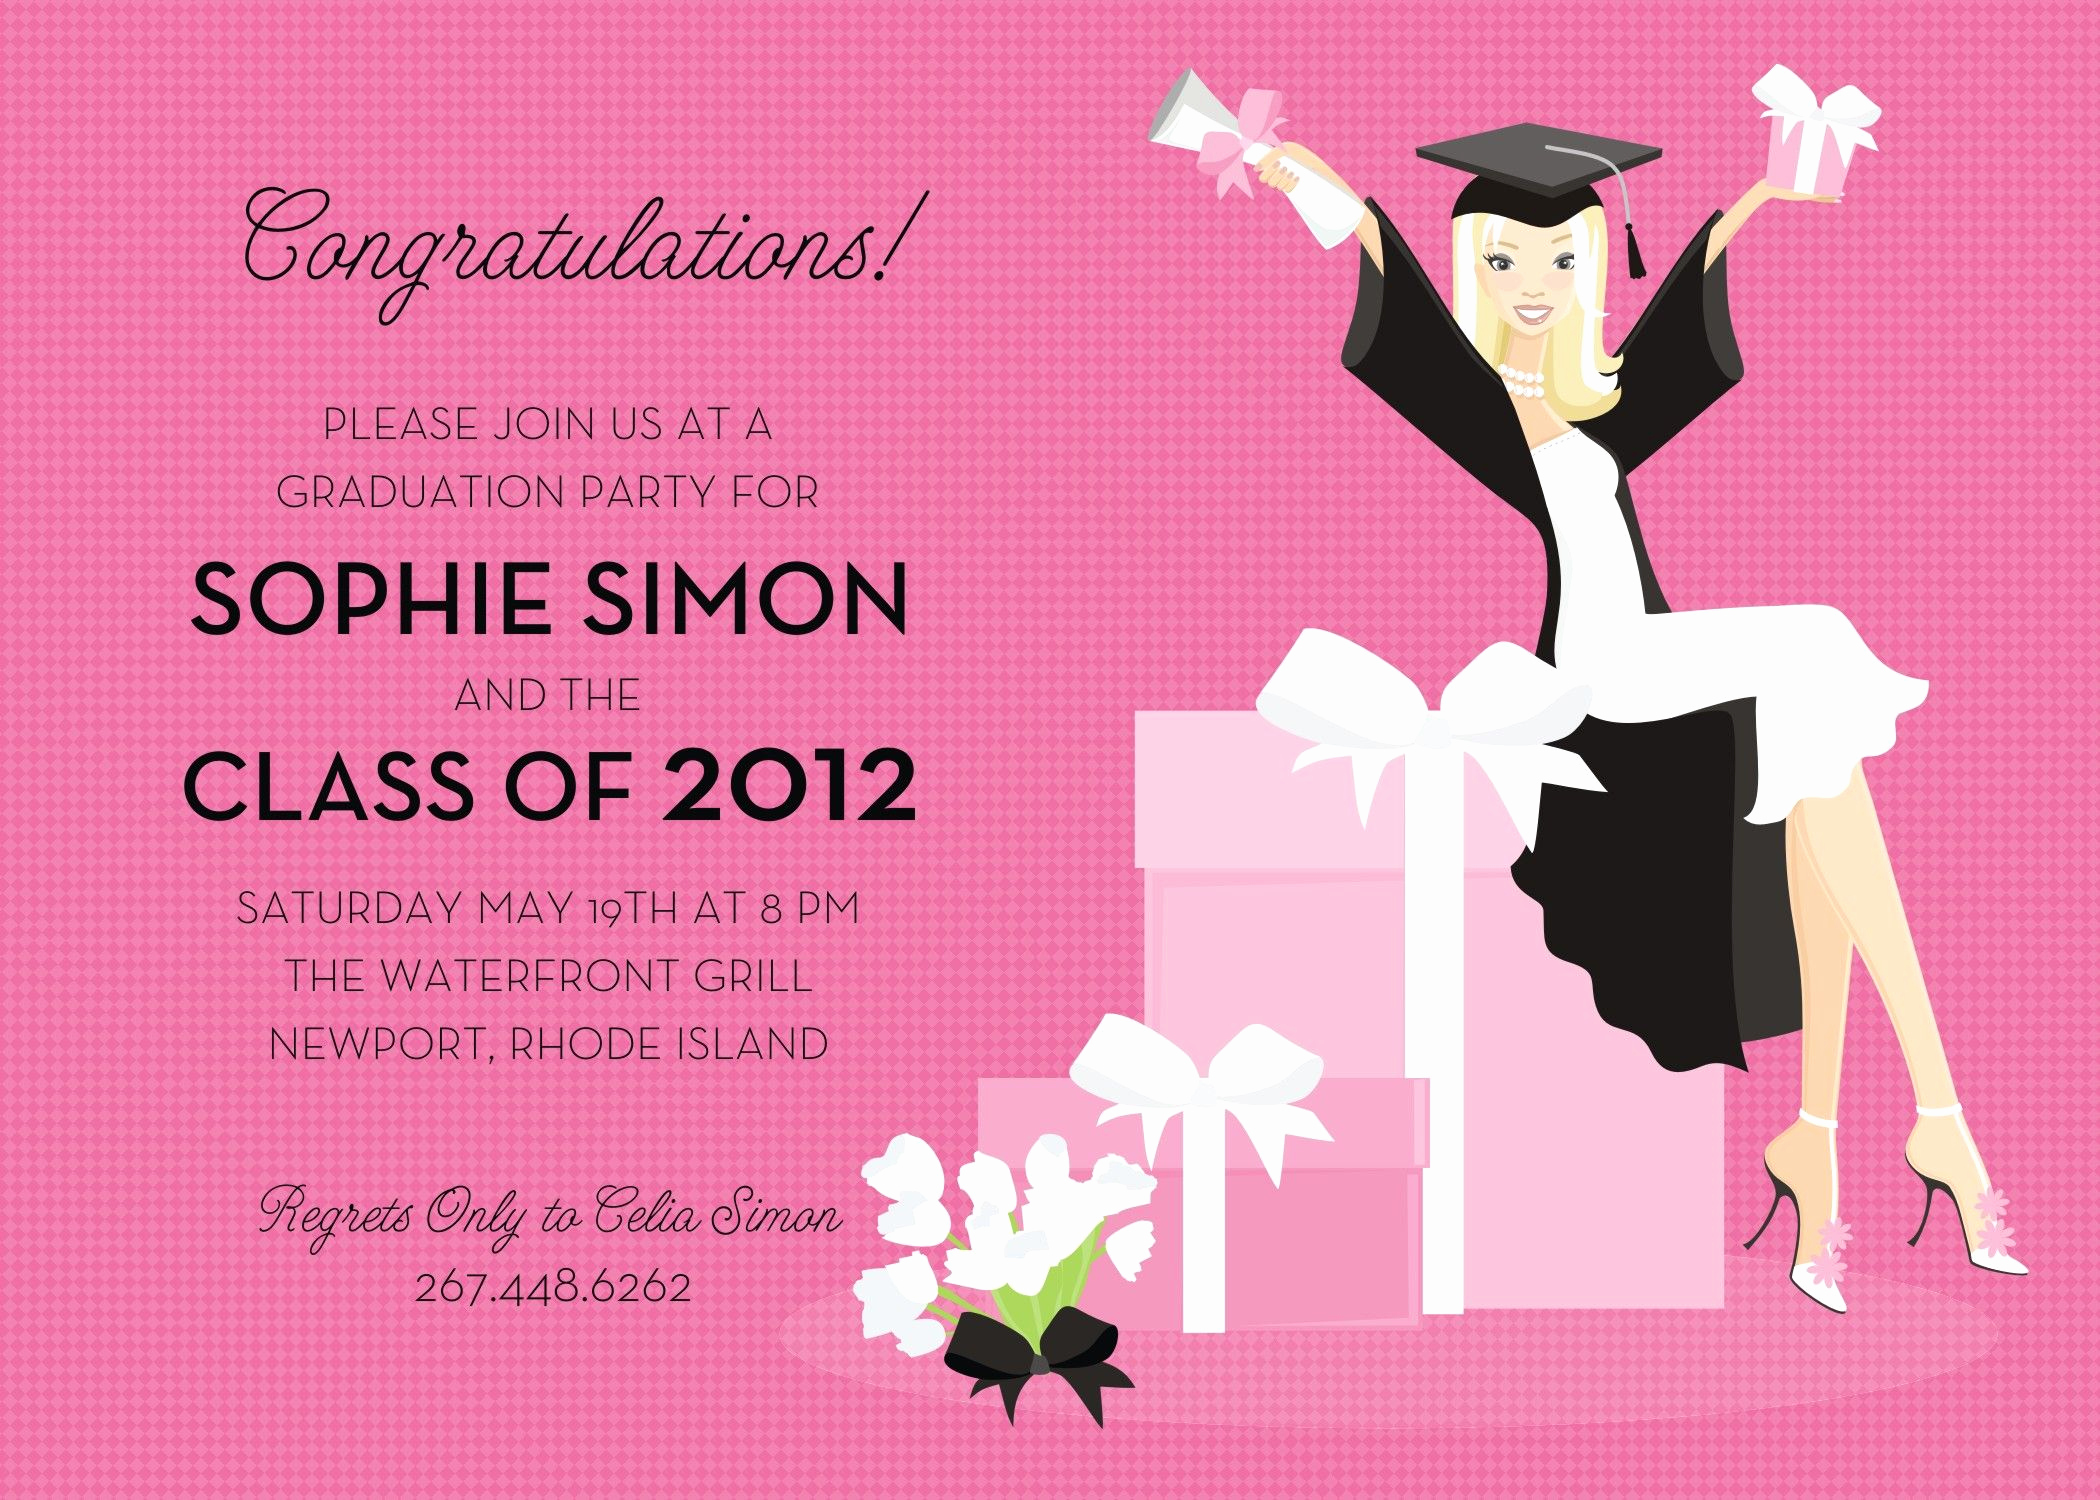 Graduation Party Invitation Wording Inspirational This Invitation Features A Stylish Grad Girl Sitting On A